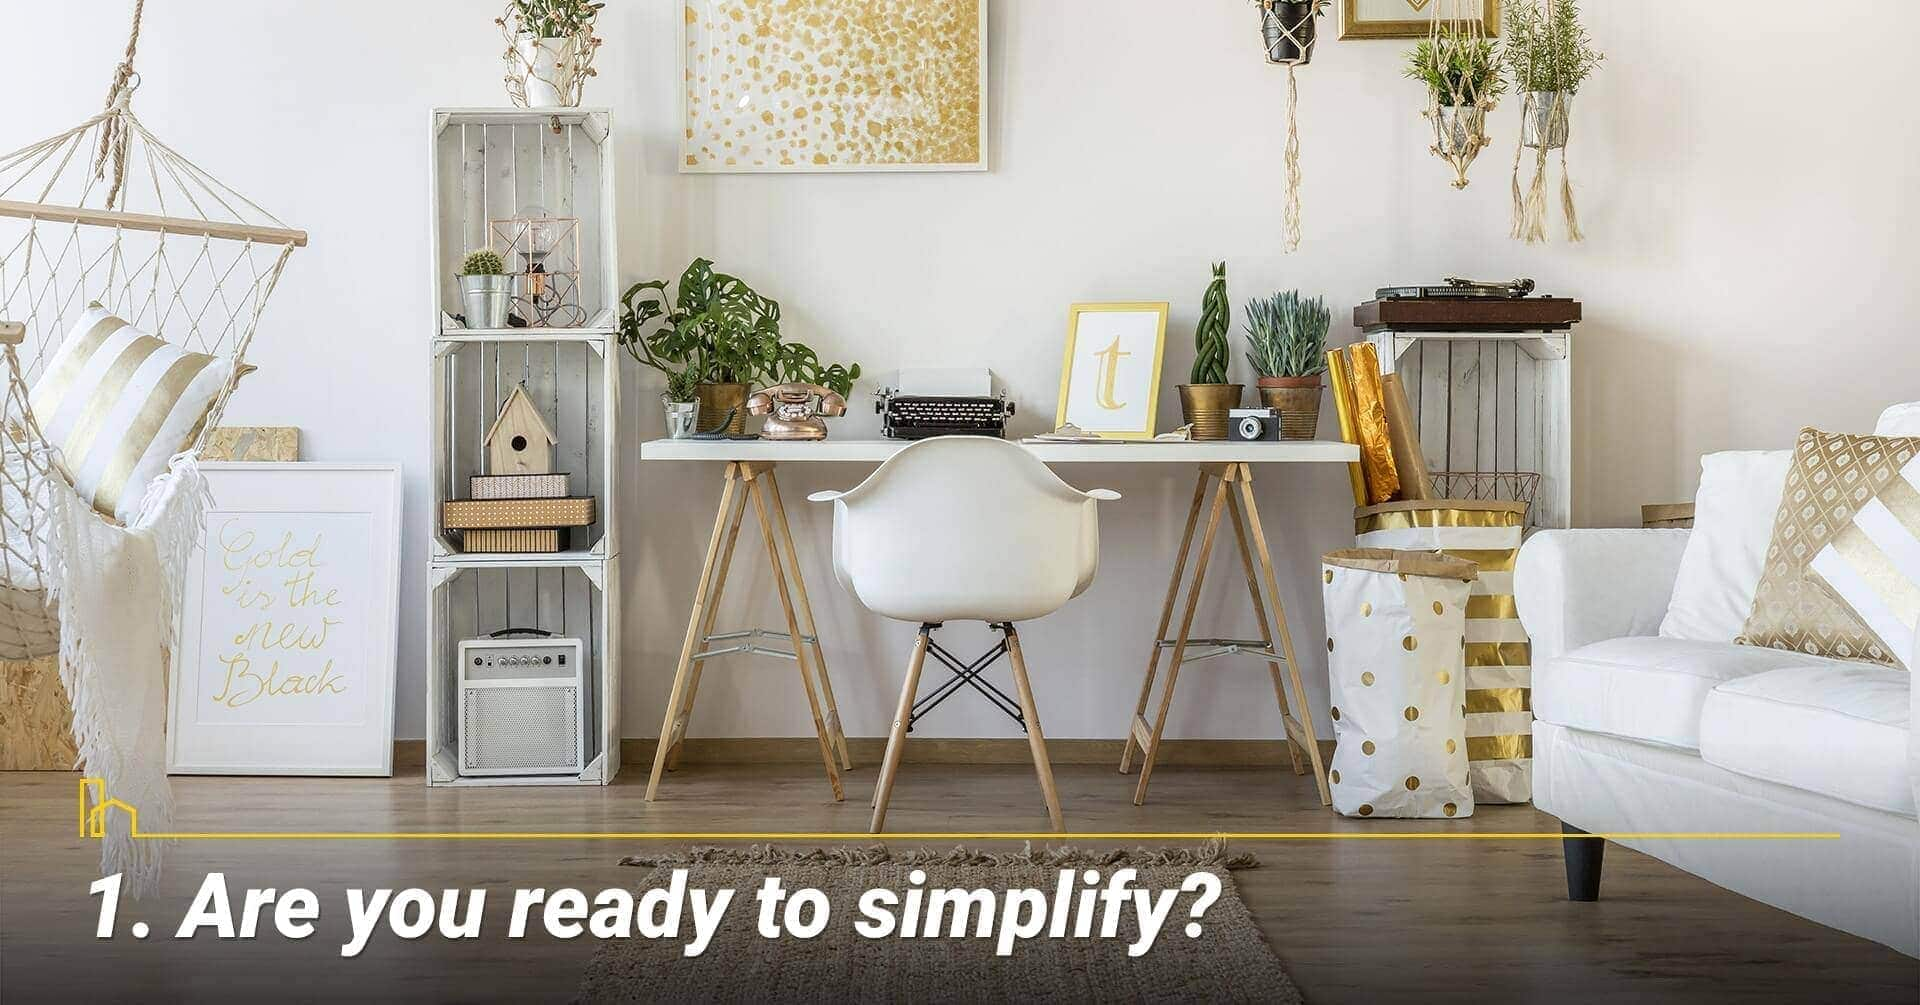 Are you ready to simplify?